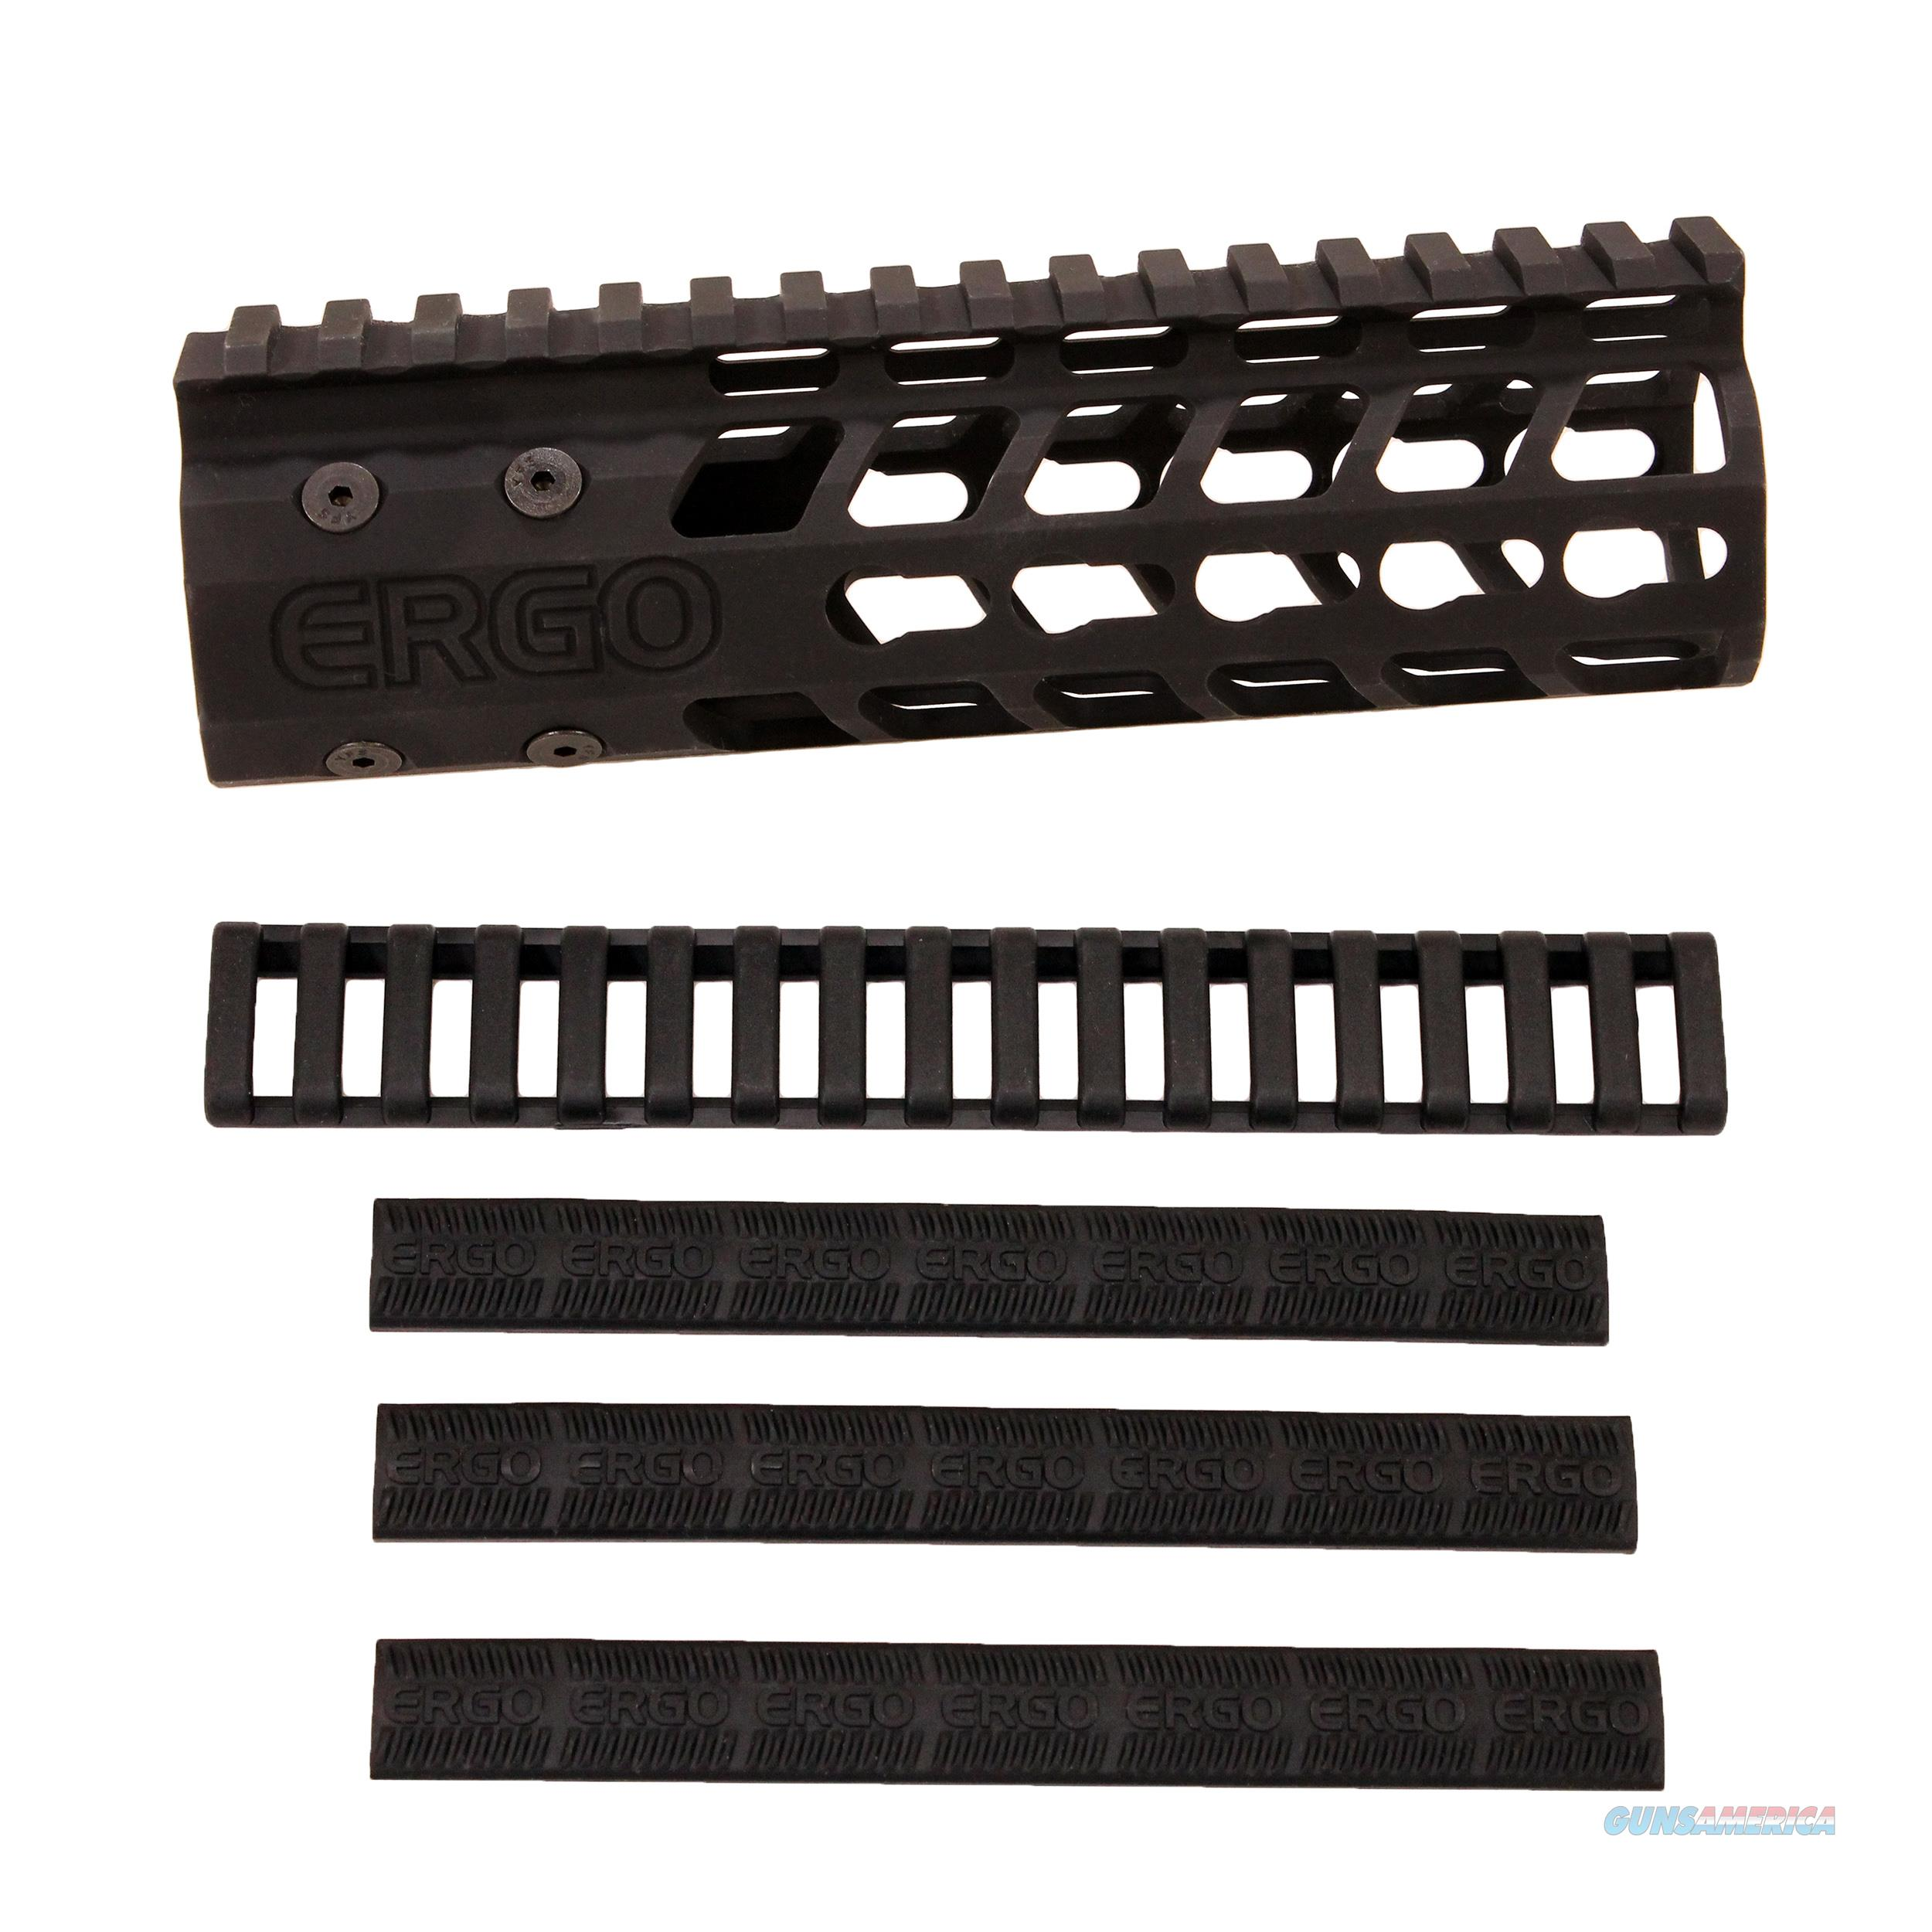 "Ergo Grip Rail Keymod 7"" Superlite Black 48197BK  Non-Guns > Gunstocks, Grips & Wood"